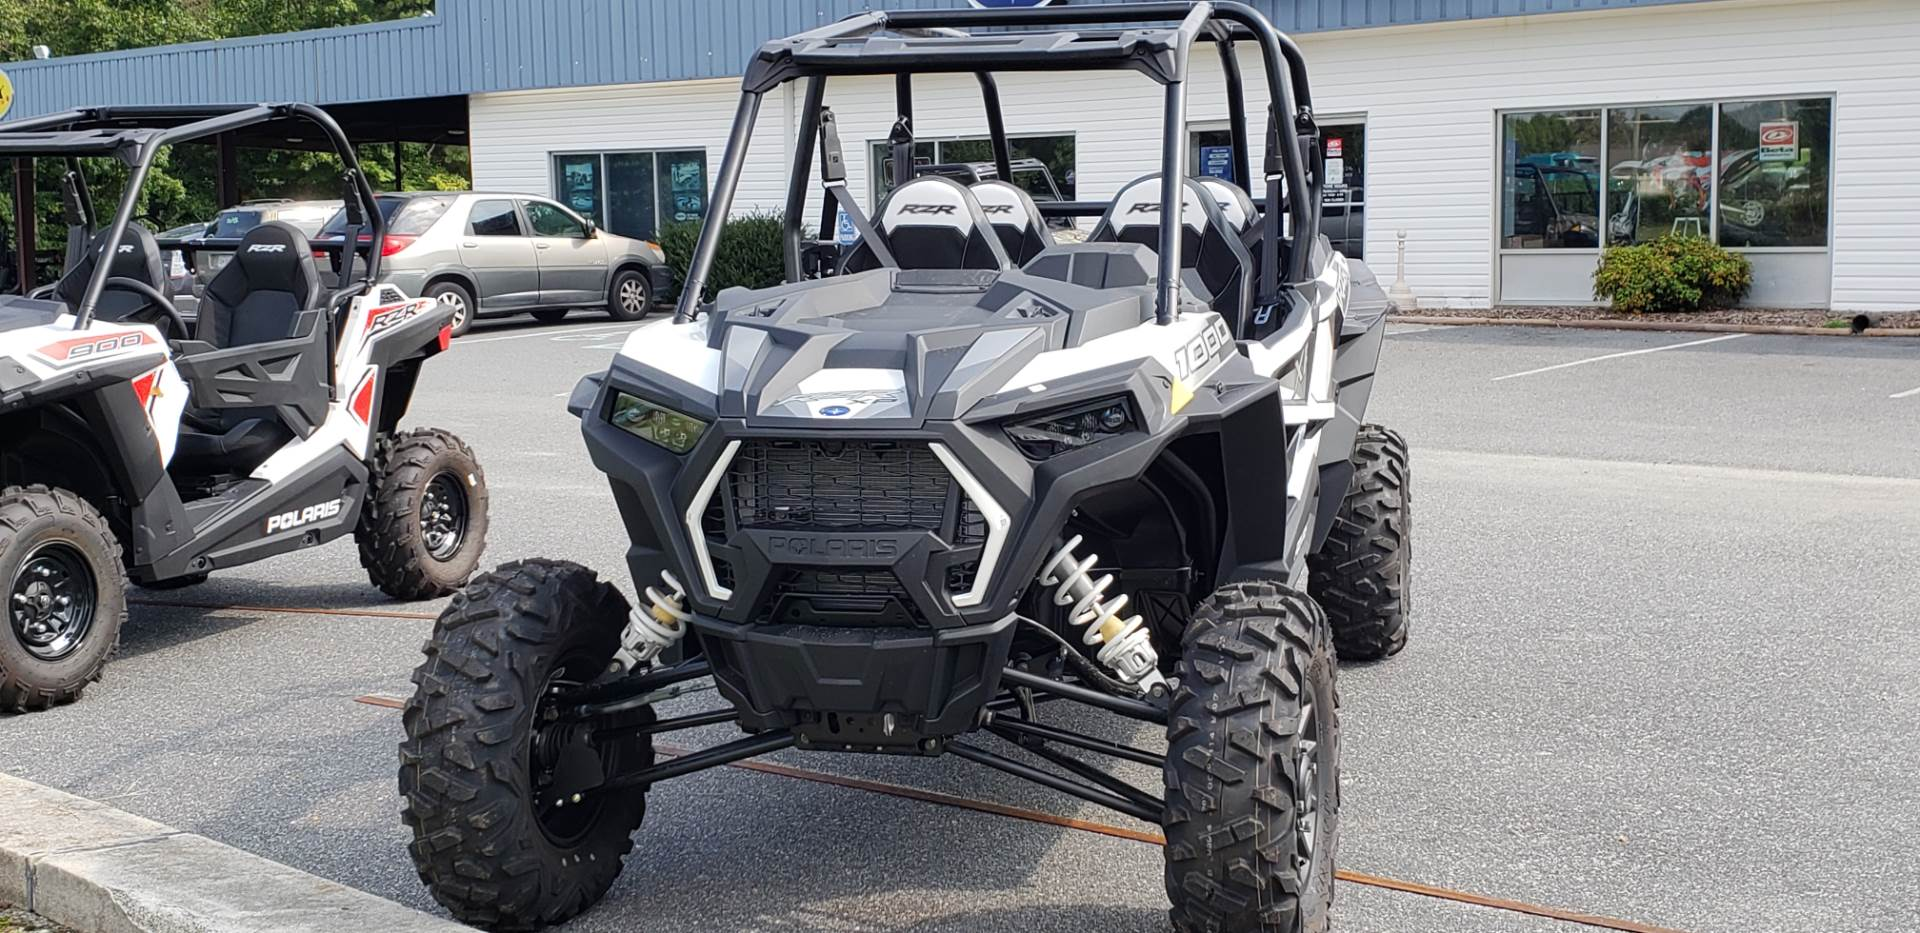 2019 Polaris RZR XP 4 1000 EPS in Hayes, Virginia - Photo 2